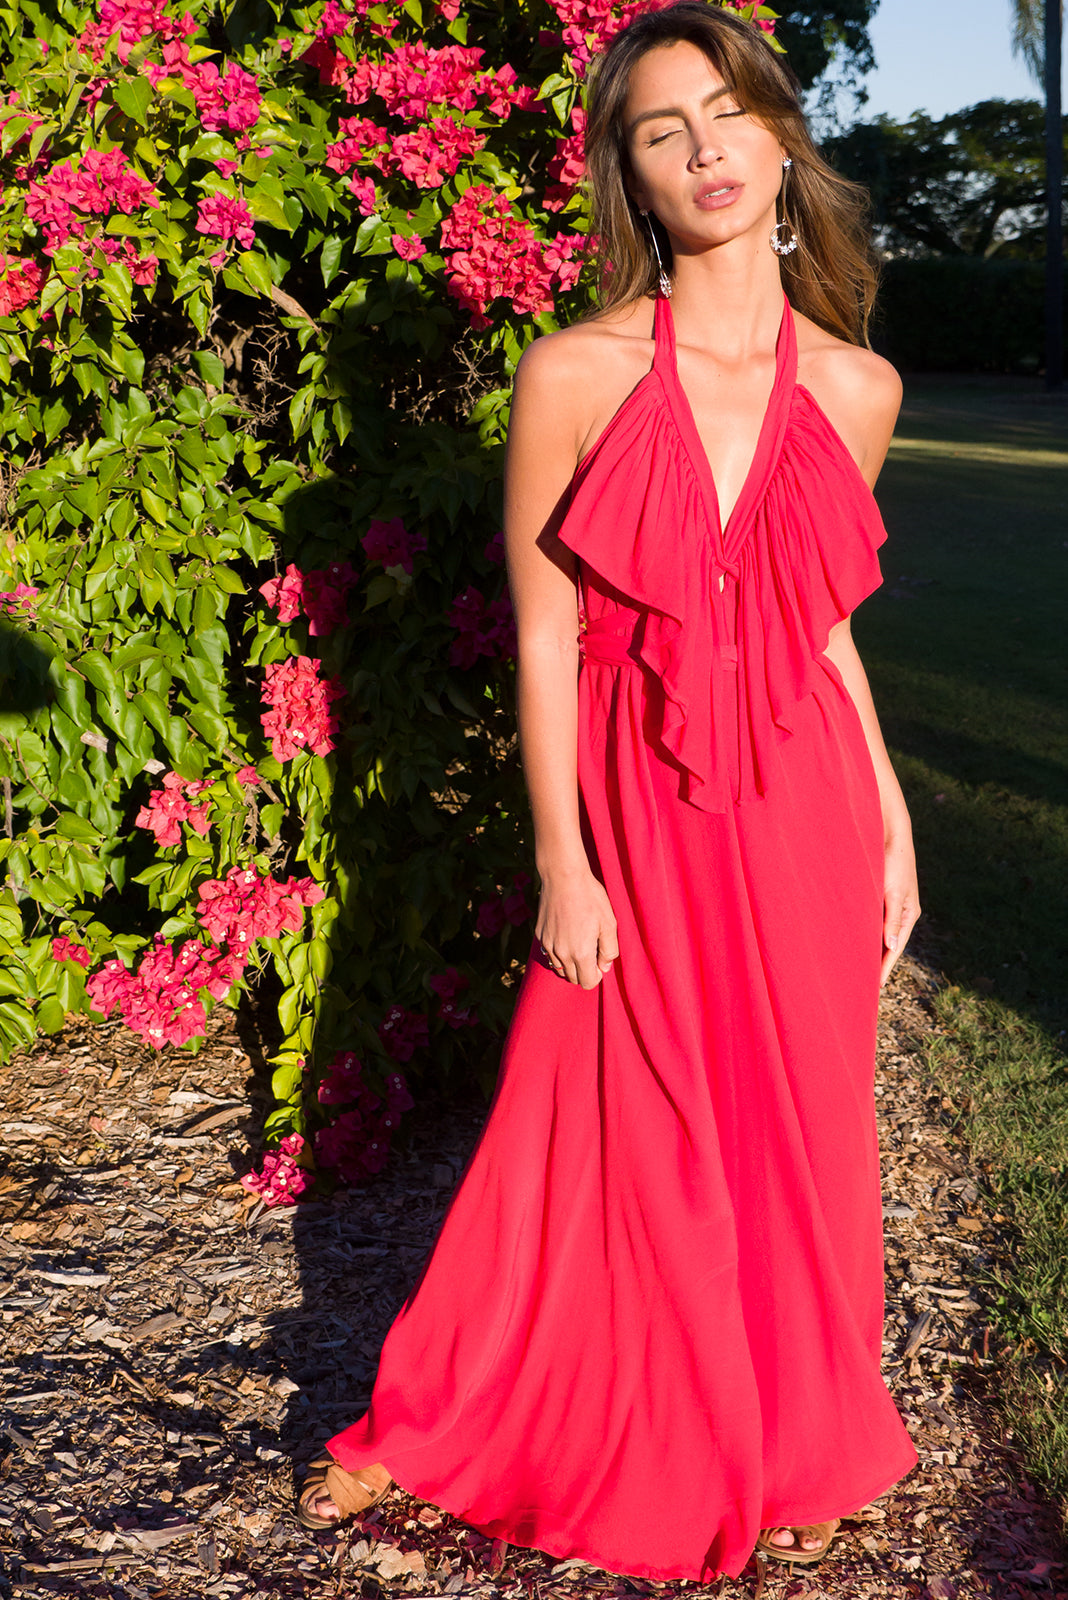 Belle Starr Maxi Dress Backless Halter formal dress in true red